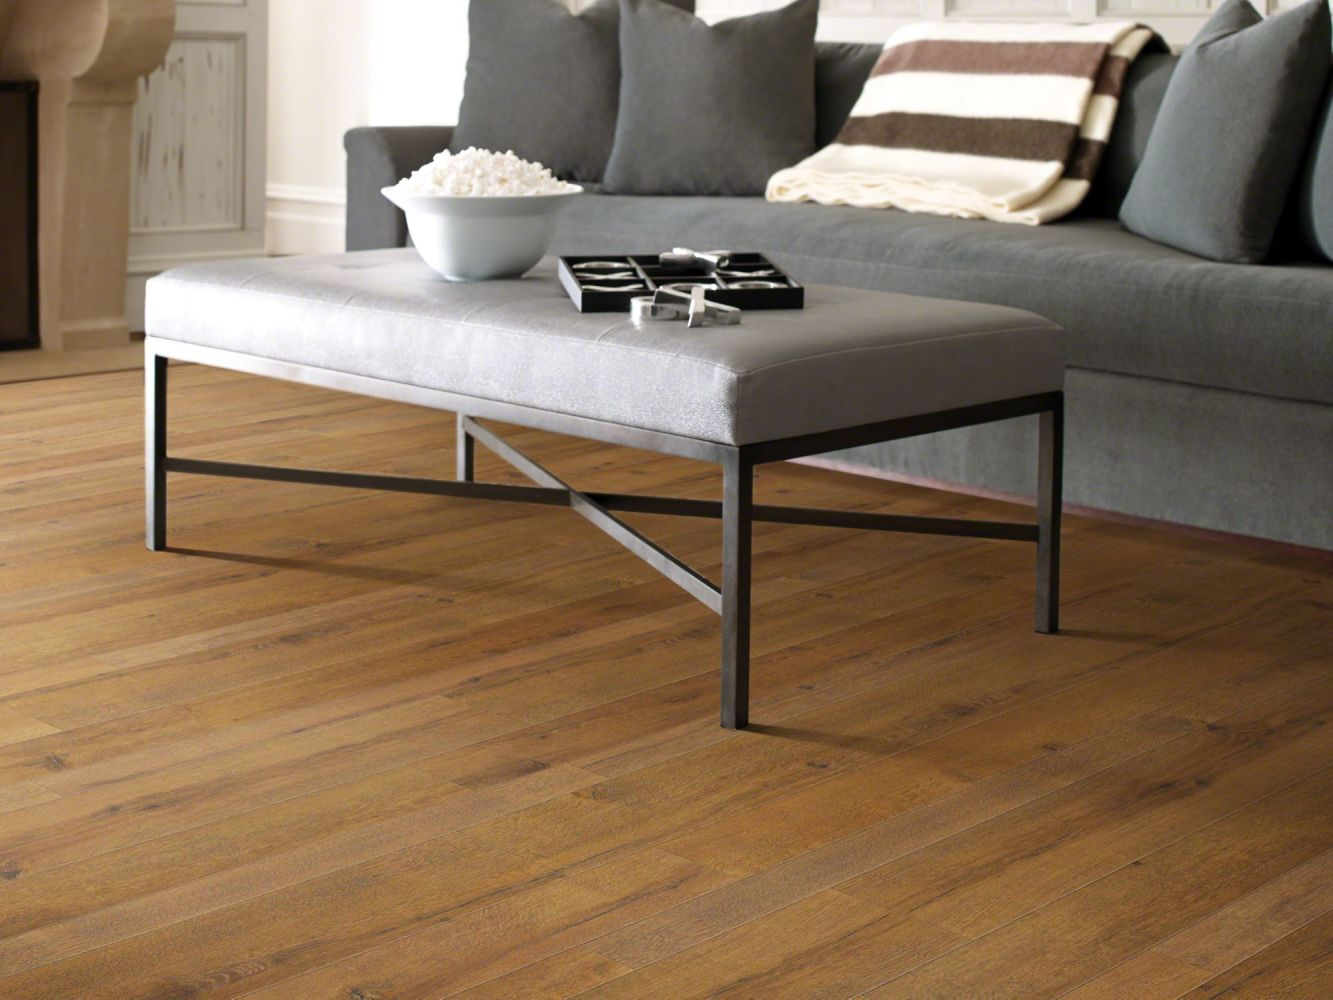 Shaw Floors Home Fn Gold Laminate Home Living Spice Brown 07010_HL086